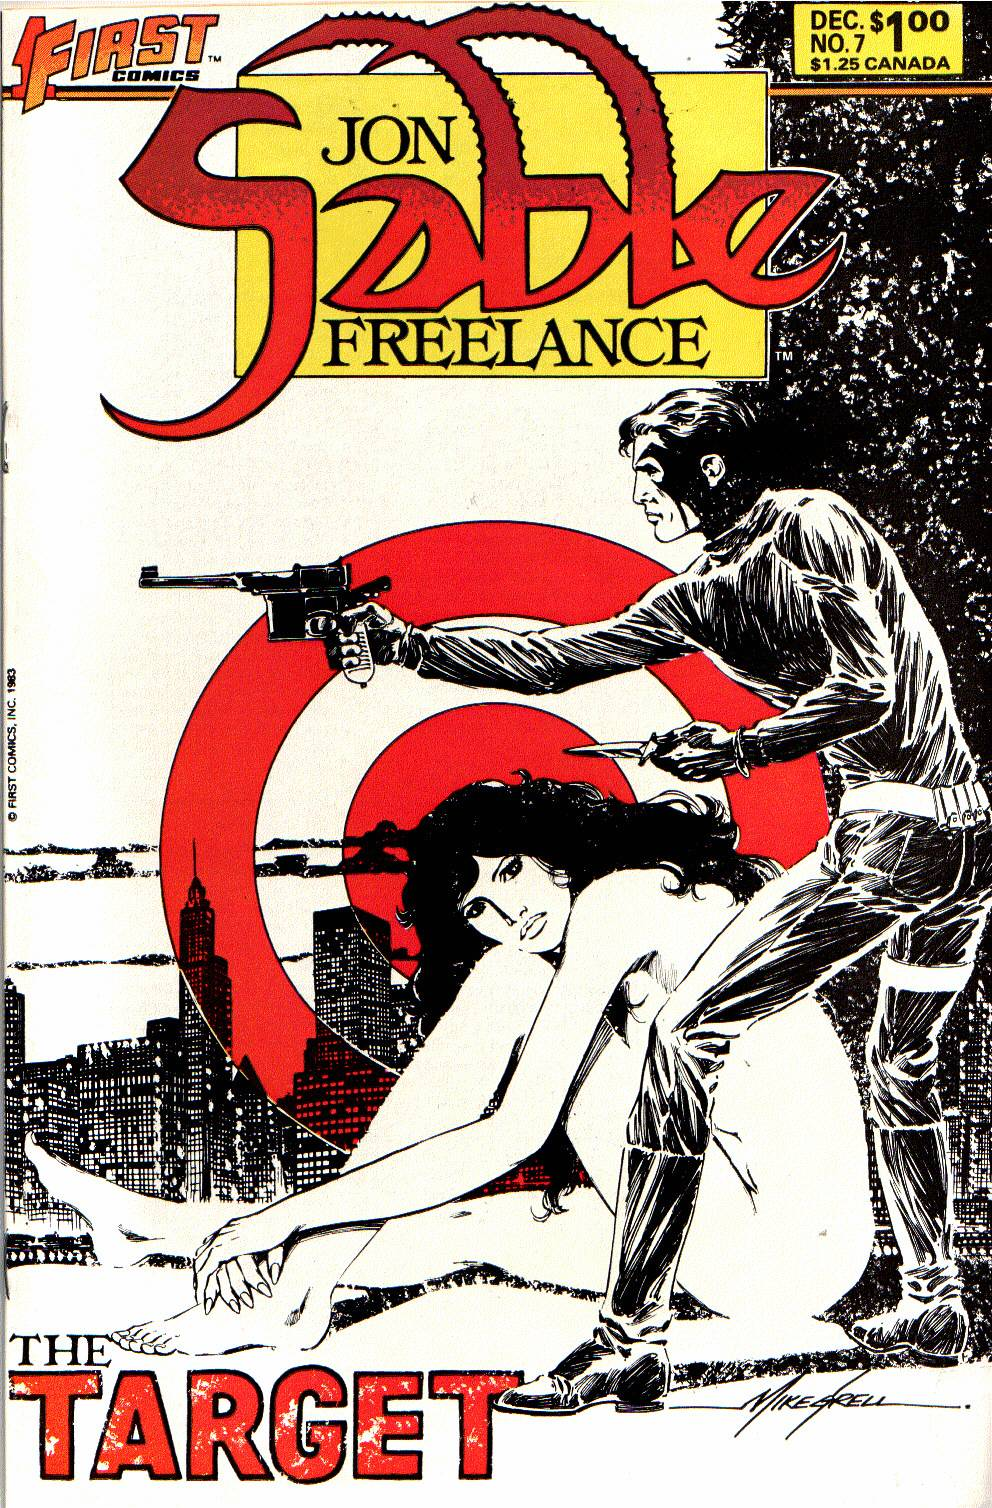 Jon Sable_ Freelance (1983) #7, cover by Mike Grell.